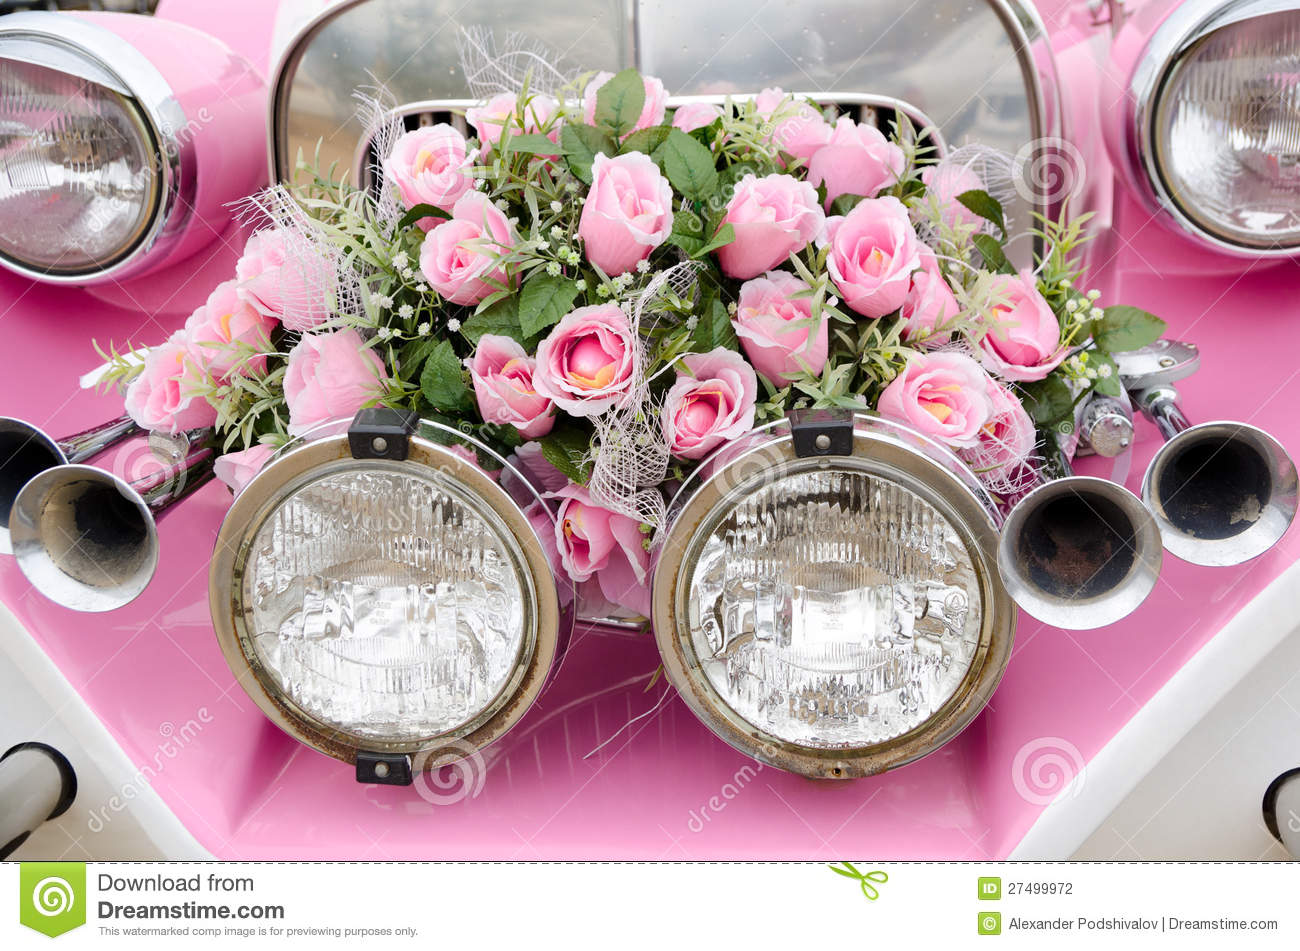 Pink wedding car stock photo. Image of flowers, bouquet - 27499972